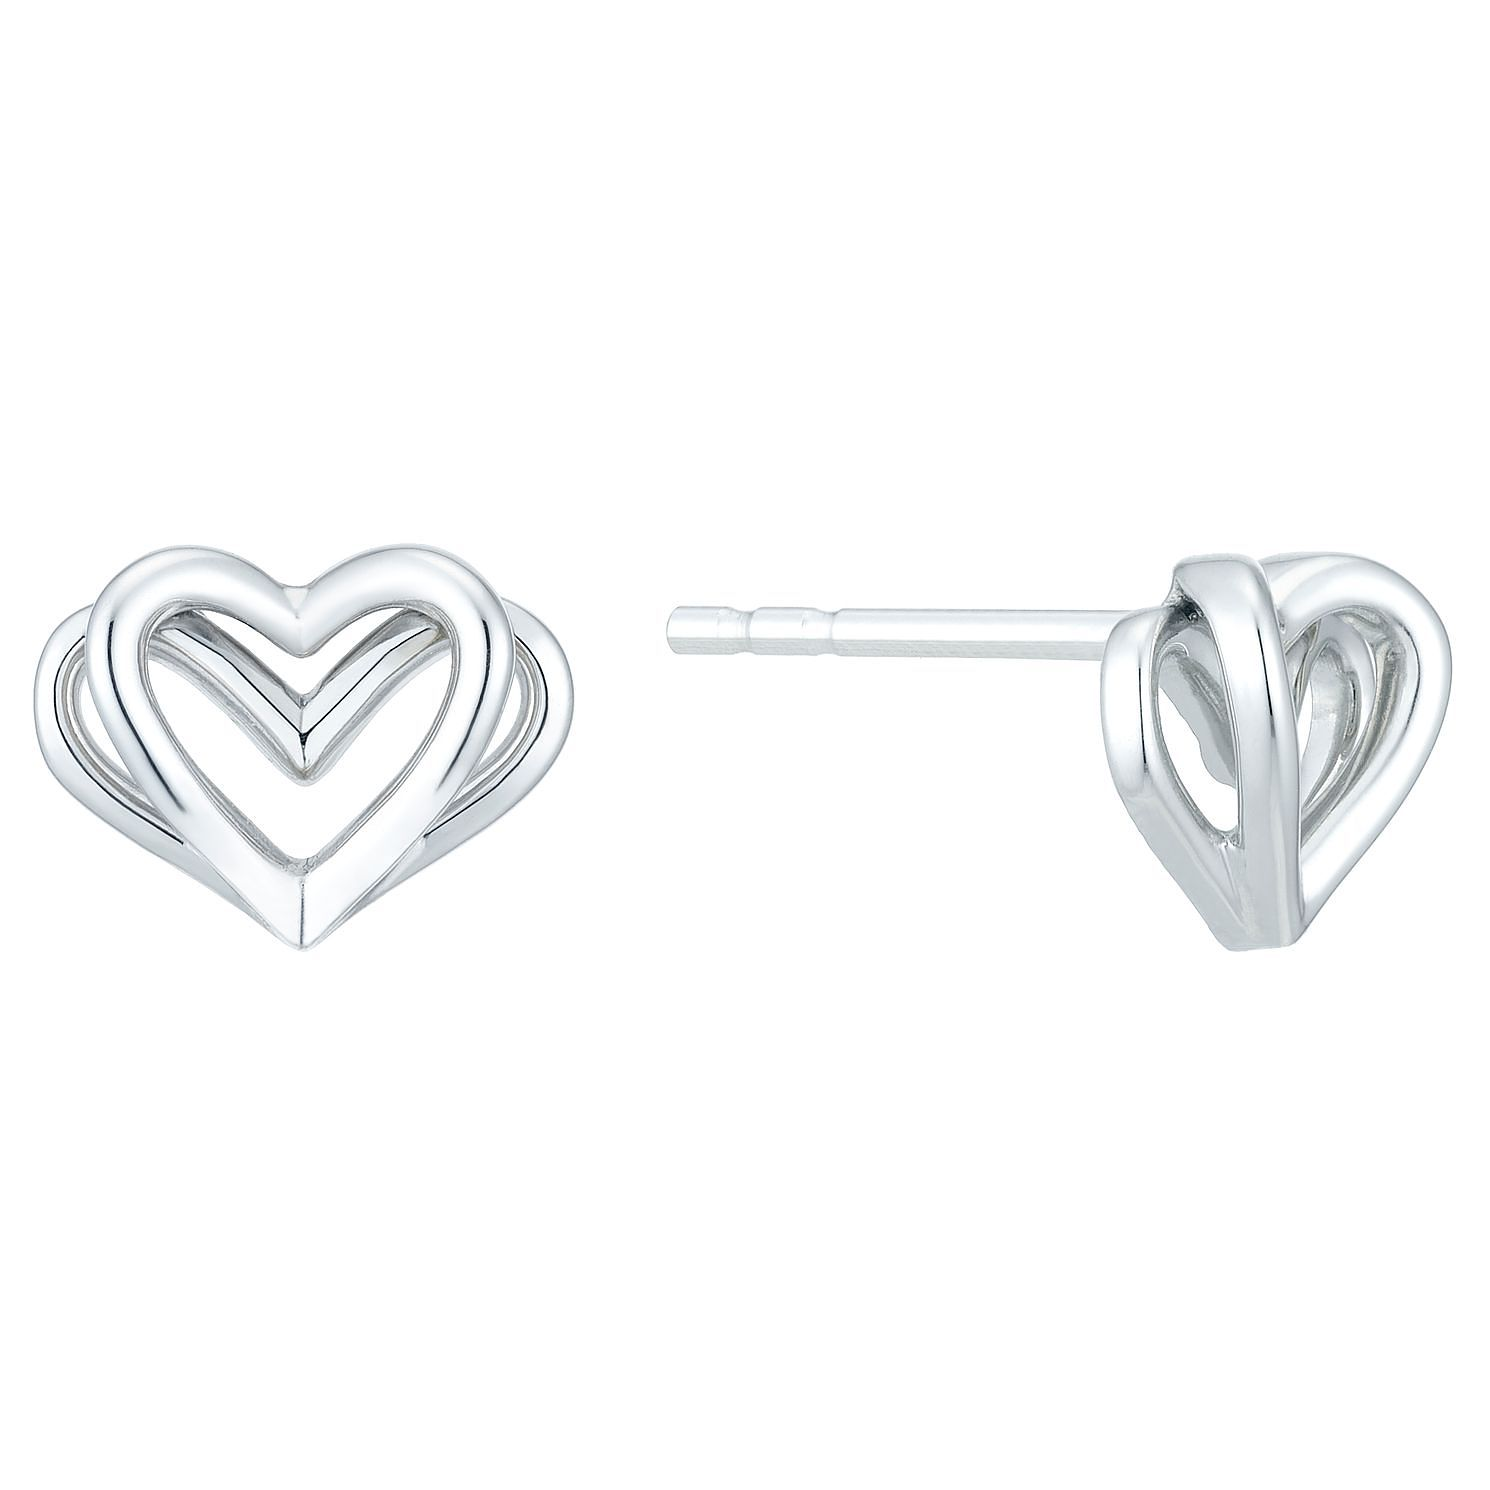 Vera Wang Kindred Heart Sterling Silver Earrings - Product number 3331822